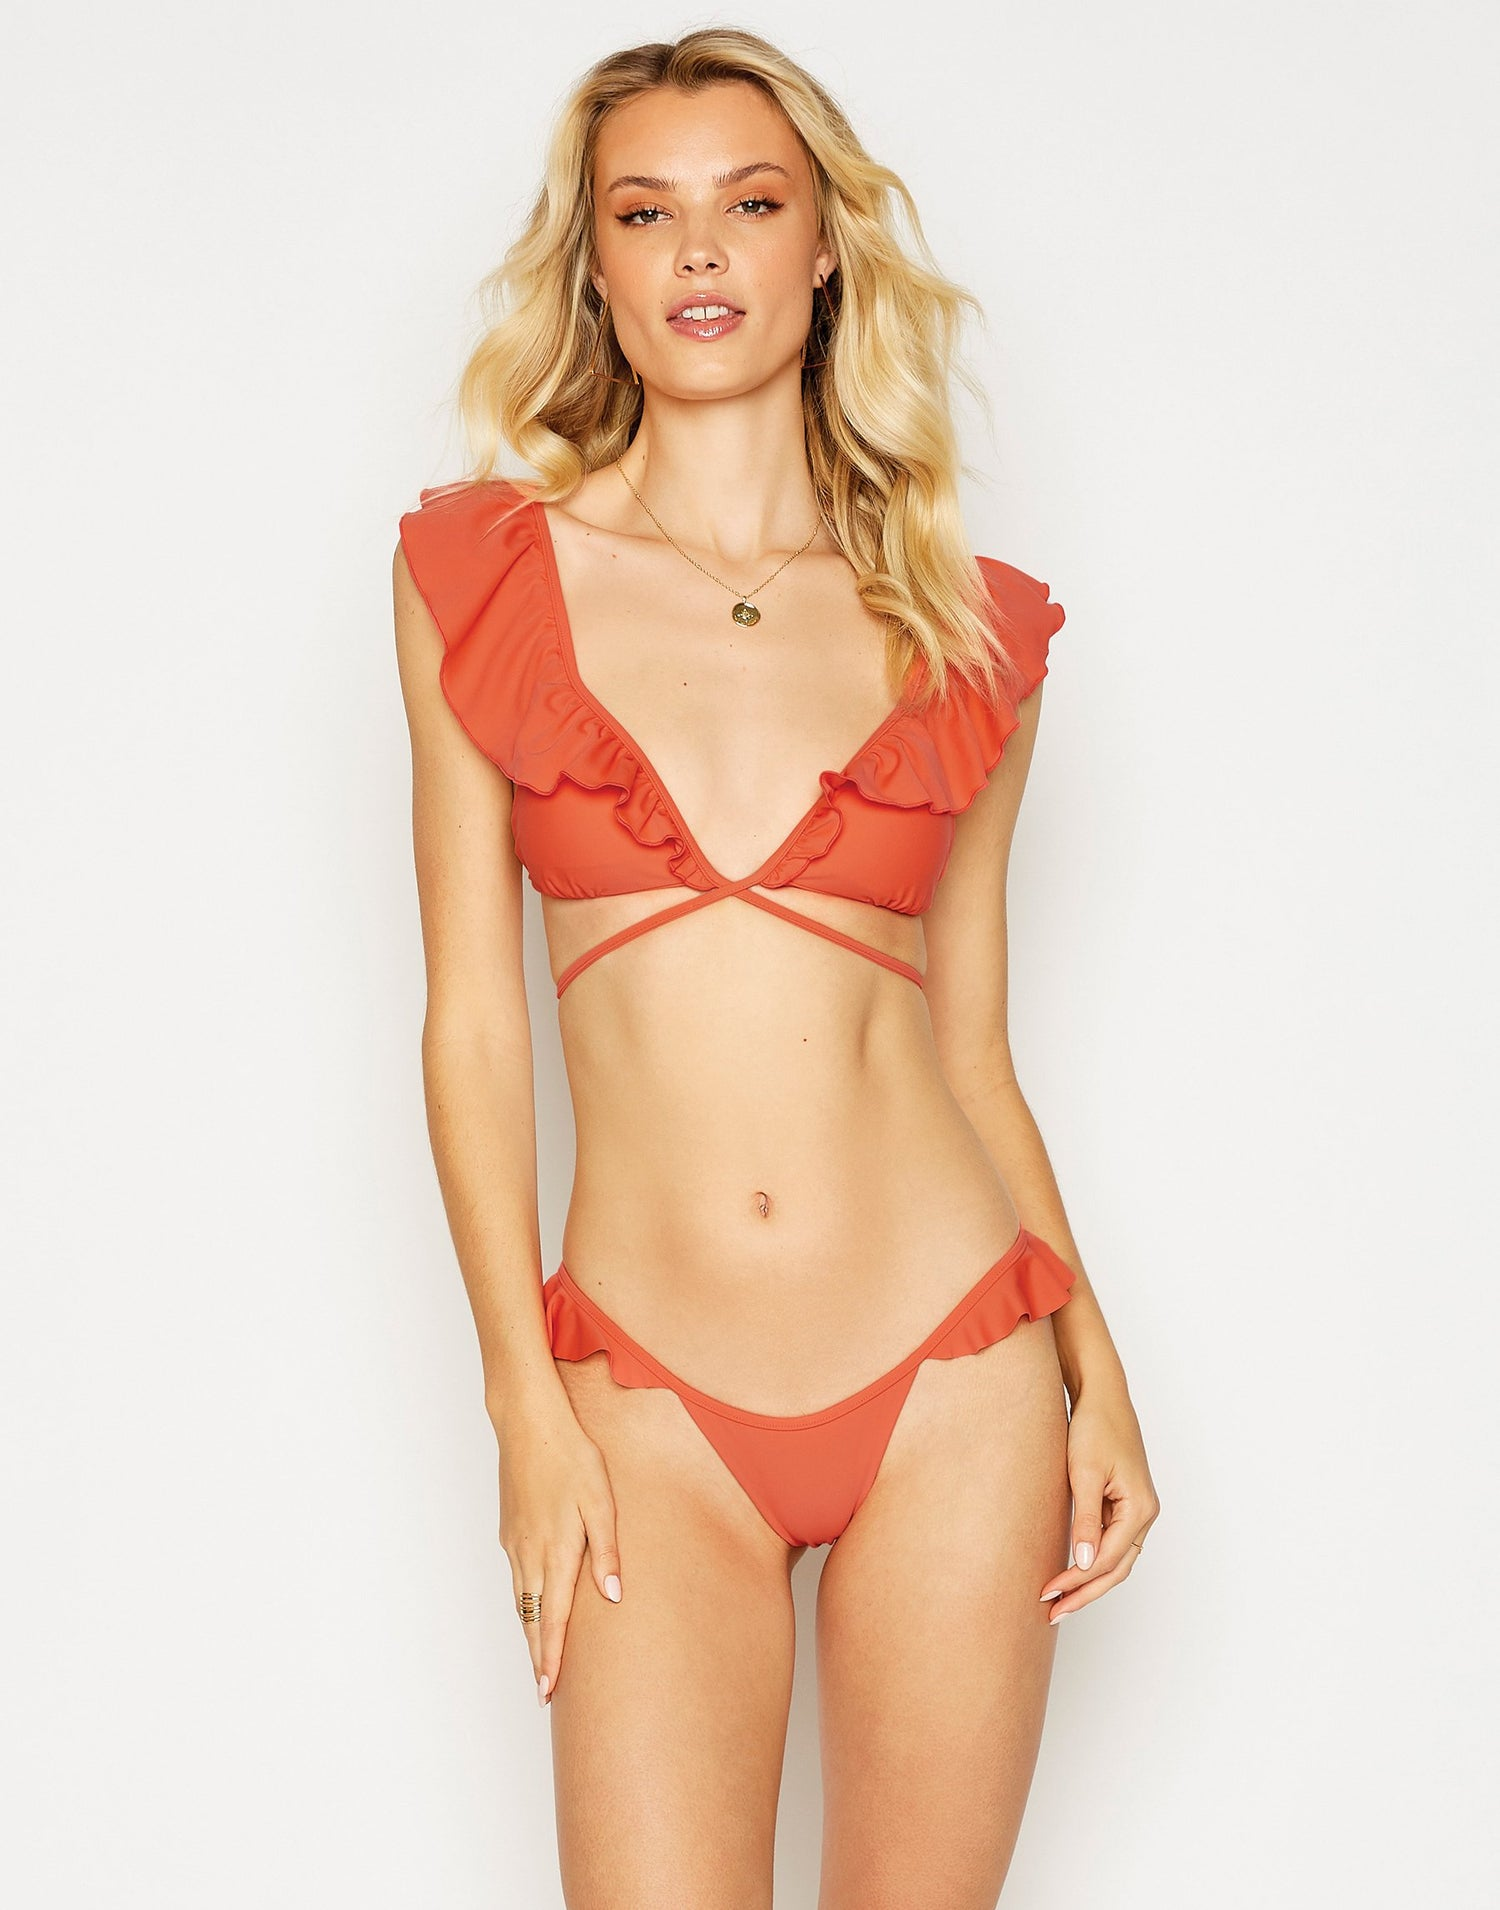 Scarlette Wrap Bikini Top in Poppy Red with Ruffle Detail - front view